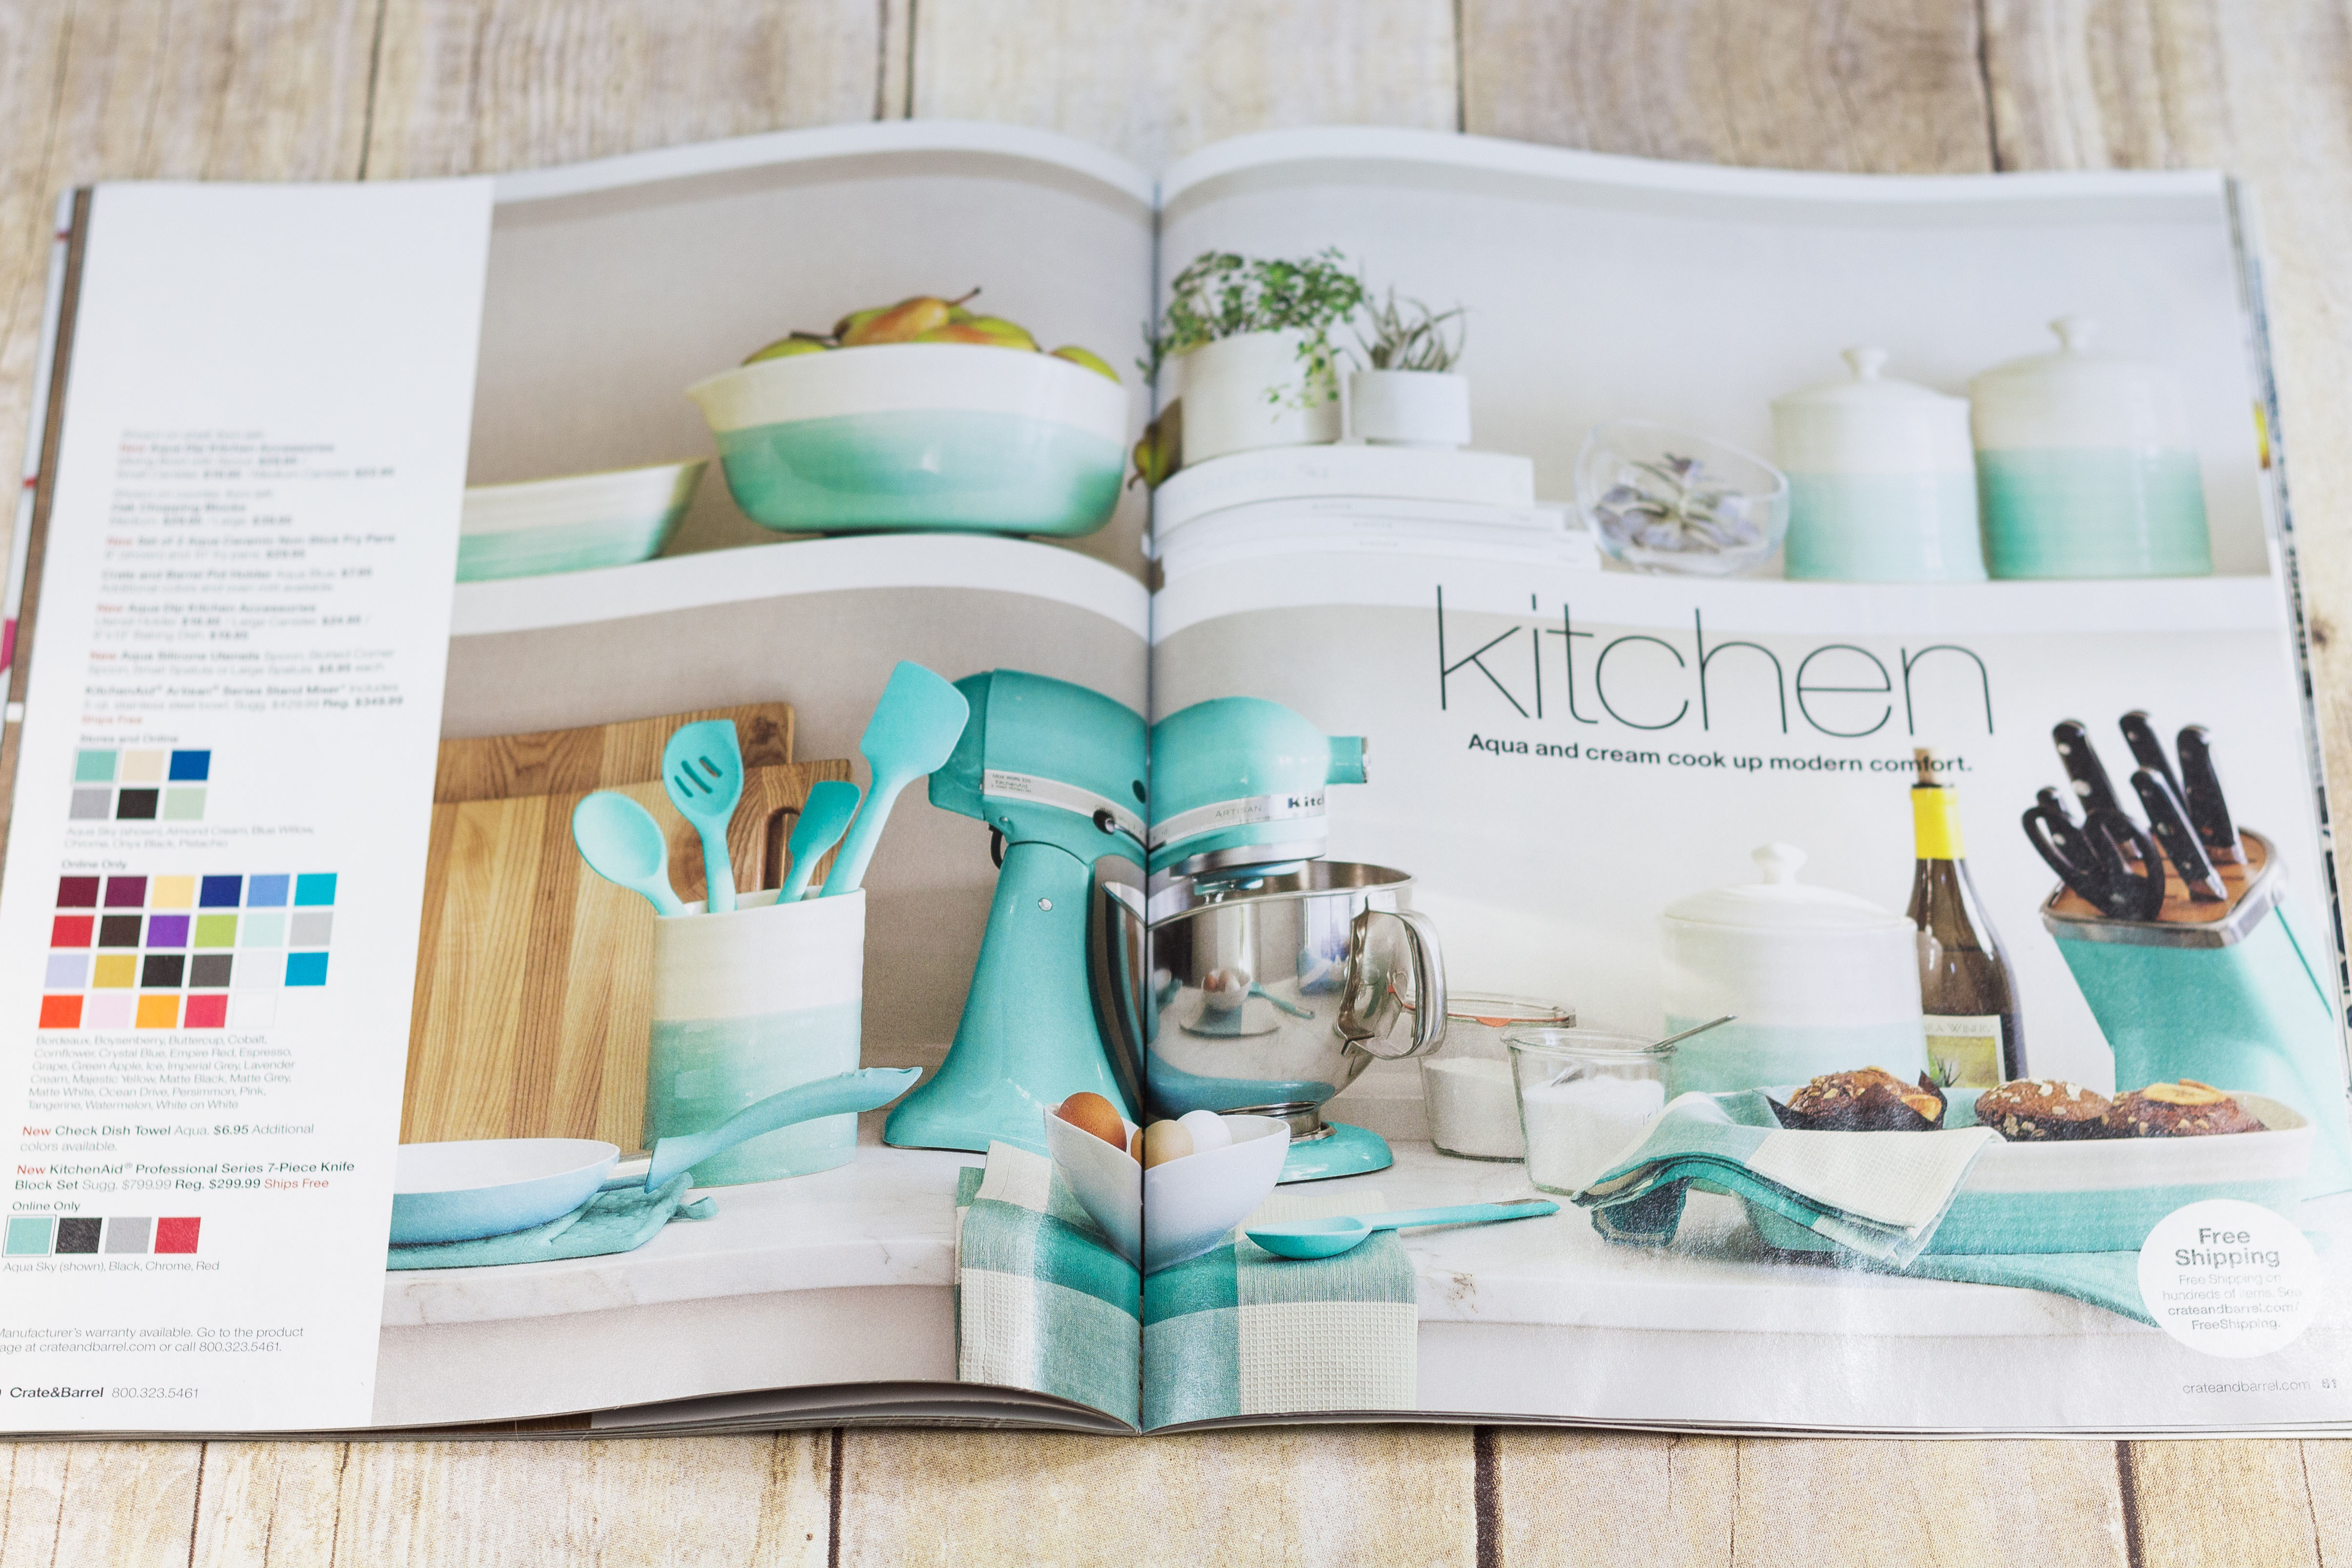 Crate and Barrel Catalog Aqua Kitchen Spread - Pantone Spring 2017 Island Paradise | https://www.roseclearfield.com